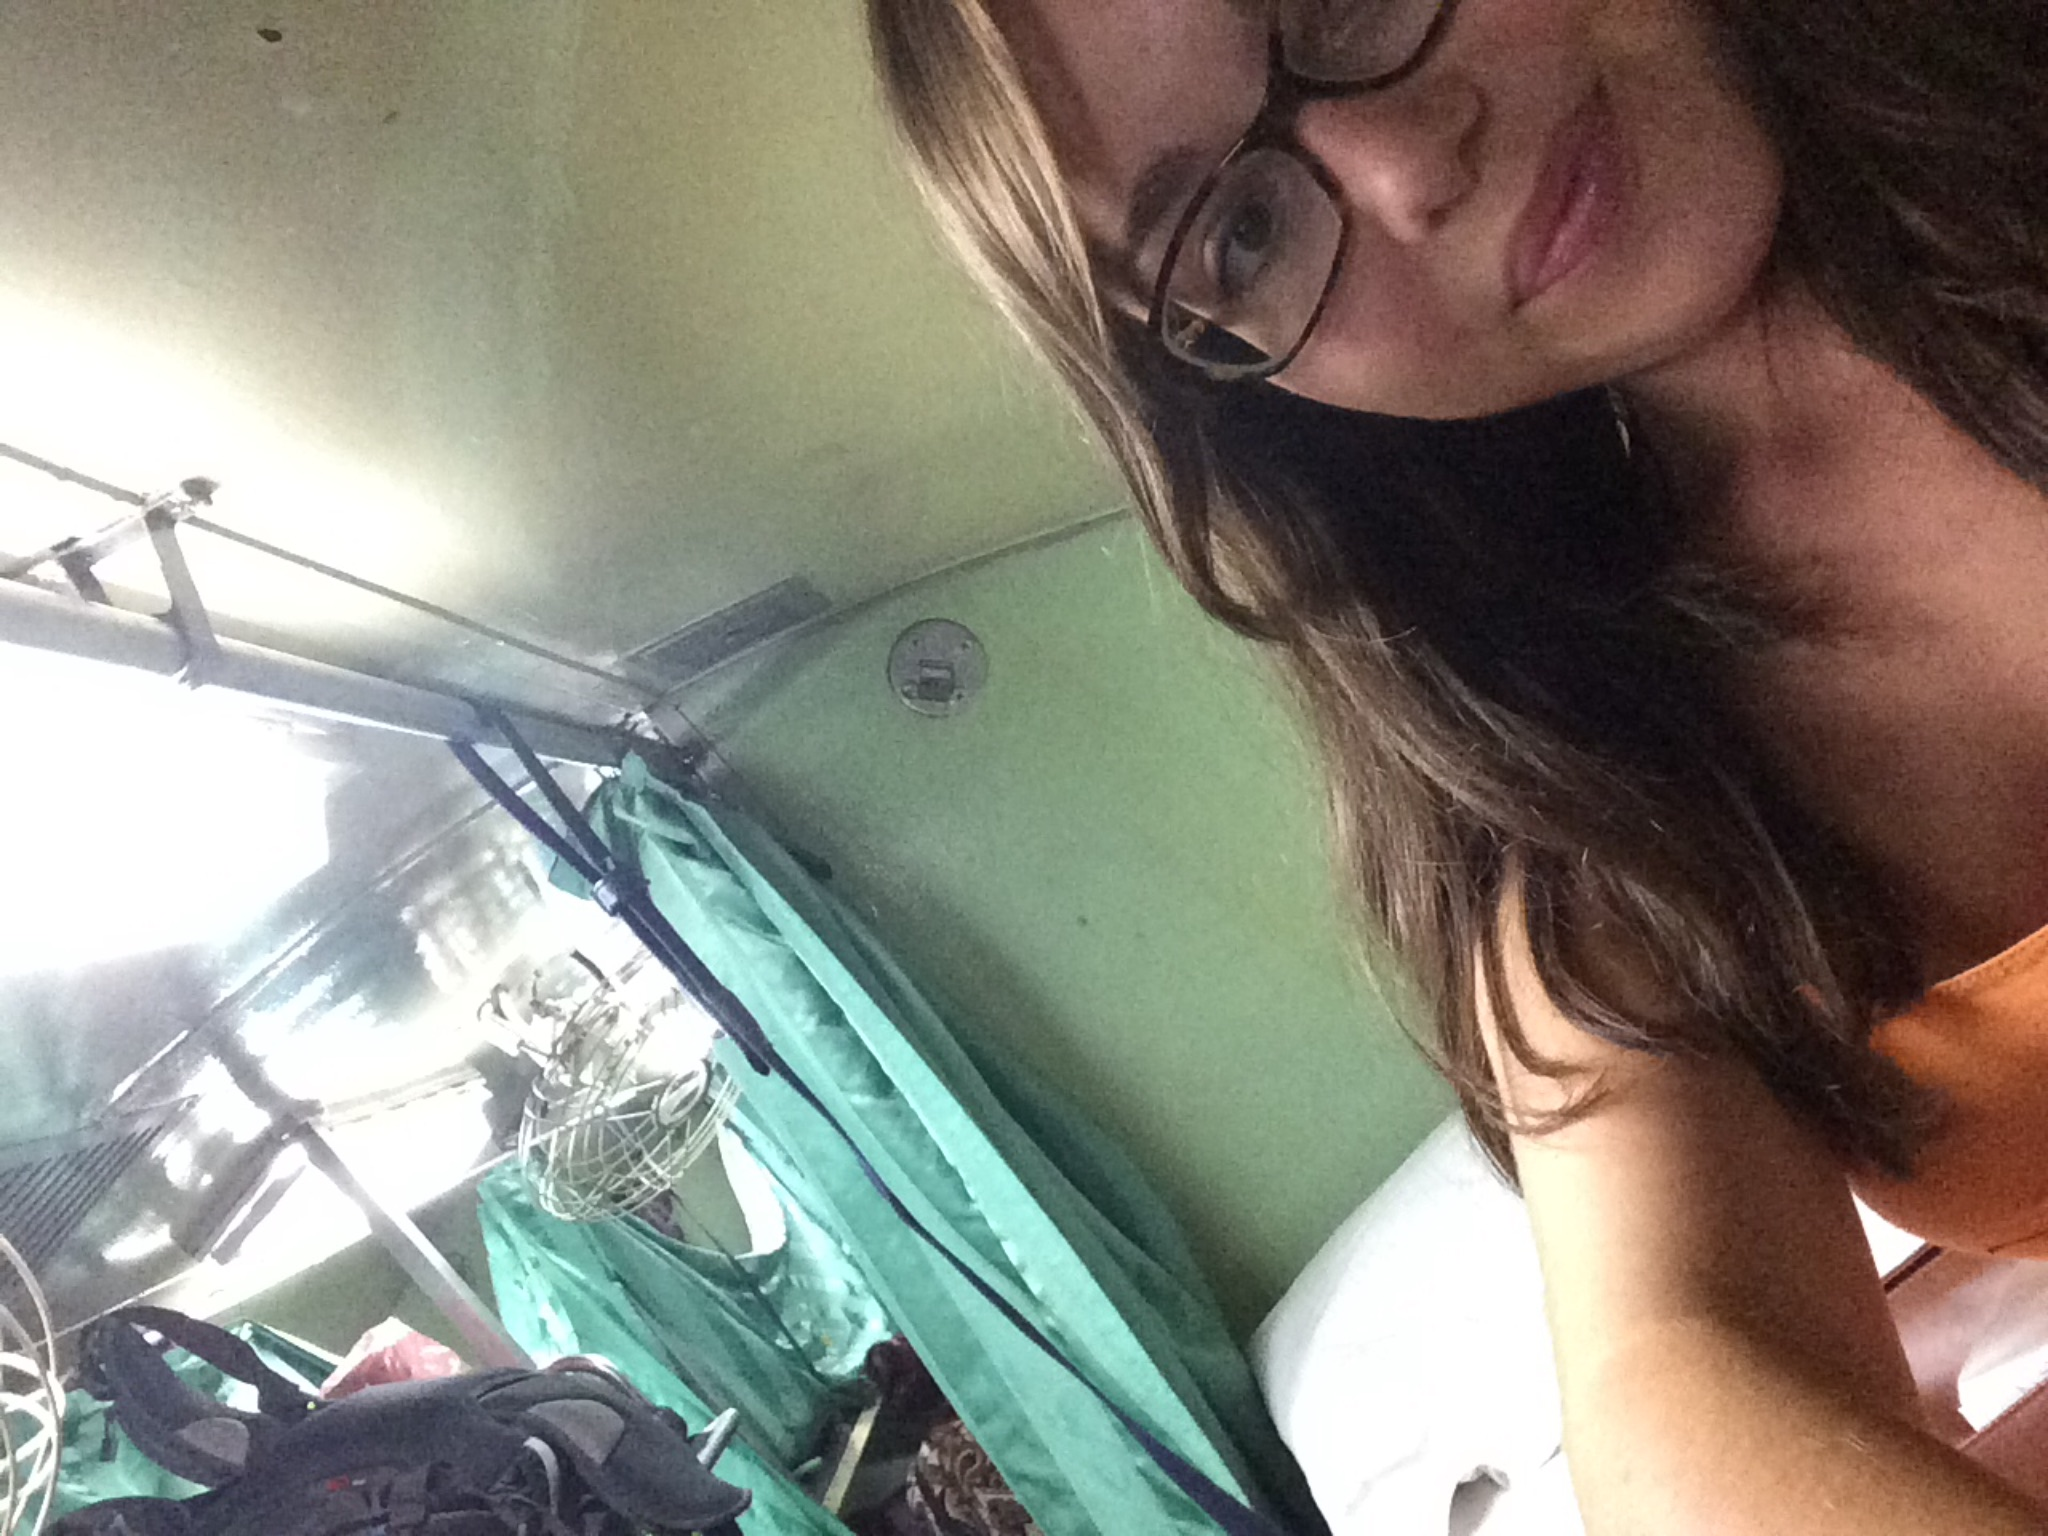 Sometimes efficient accommodation means sleeping on the train!